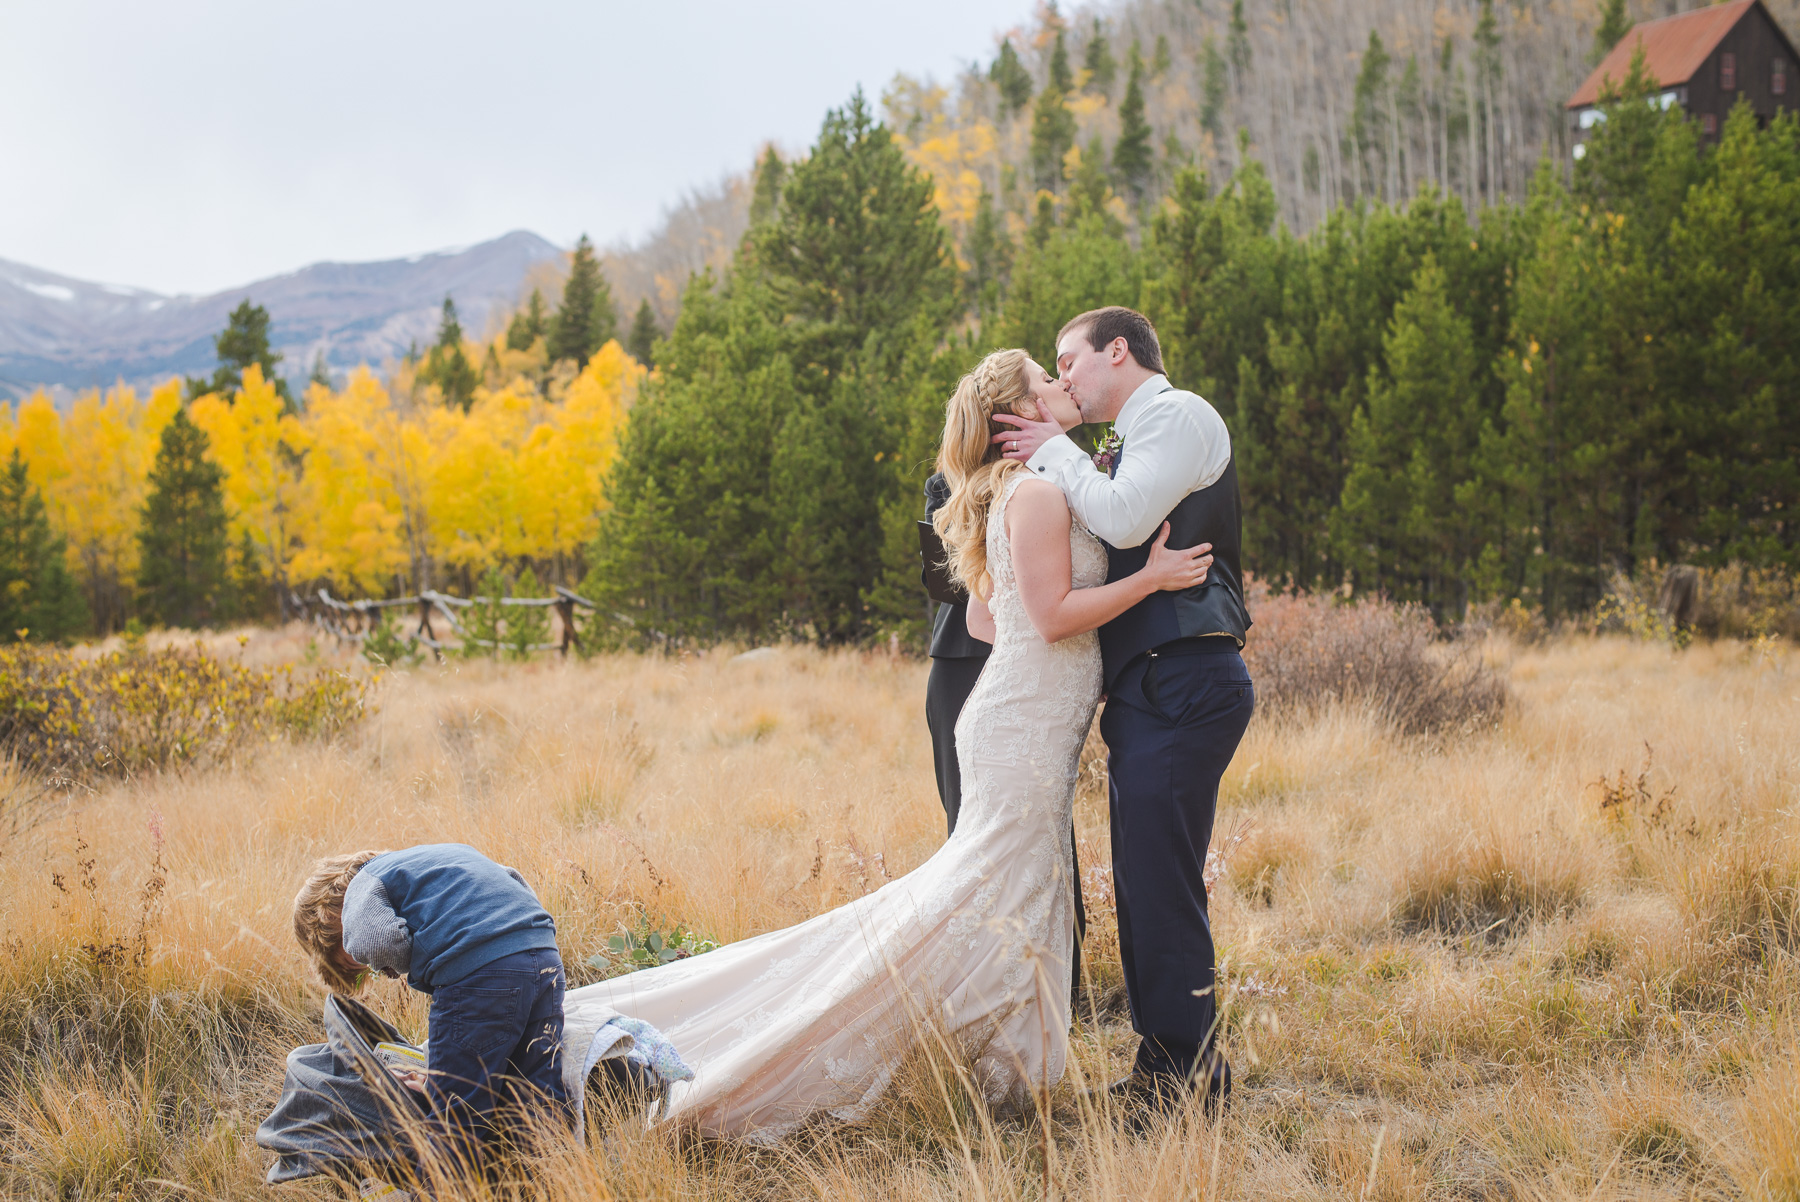 Sealed with a kiss!Autumn elopement in Breckenridge, Colorado | Summit Mountain Weddings